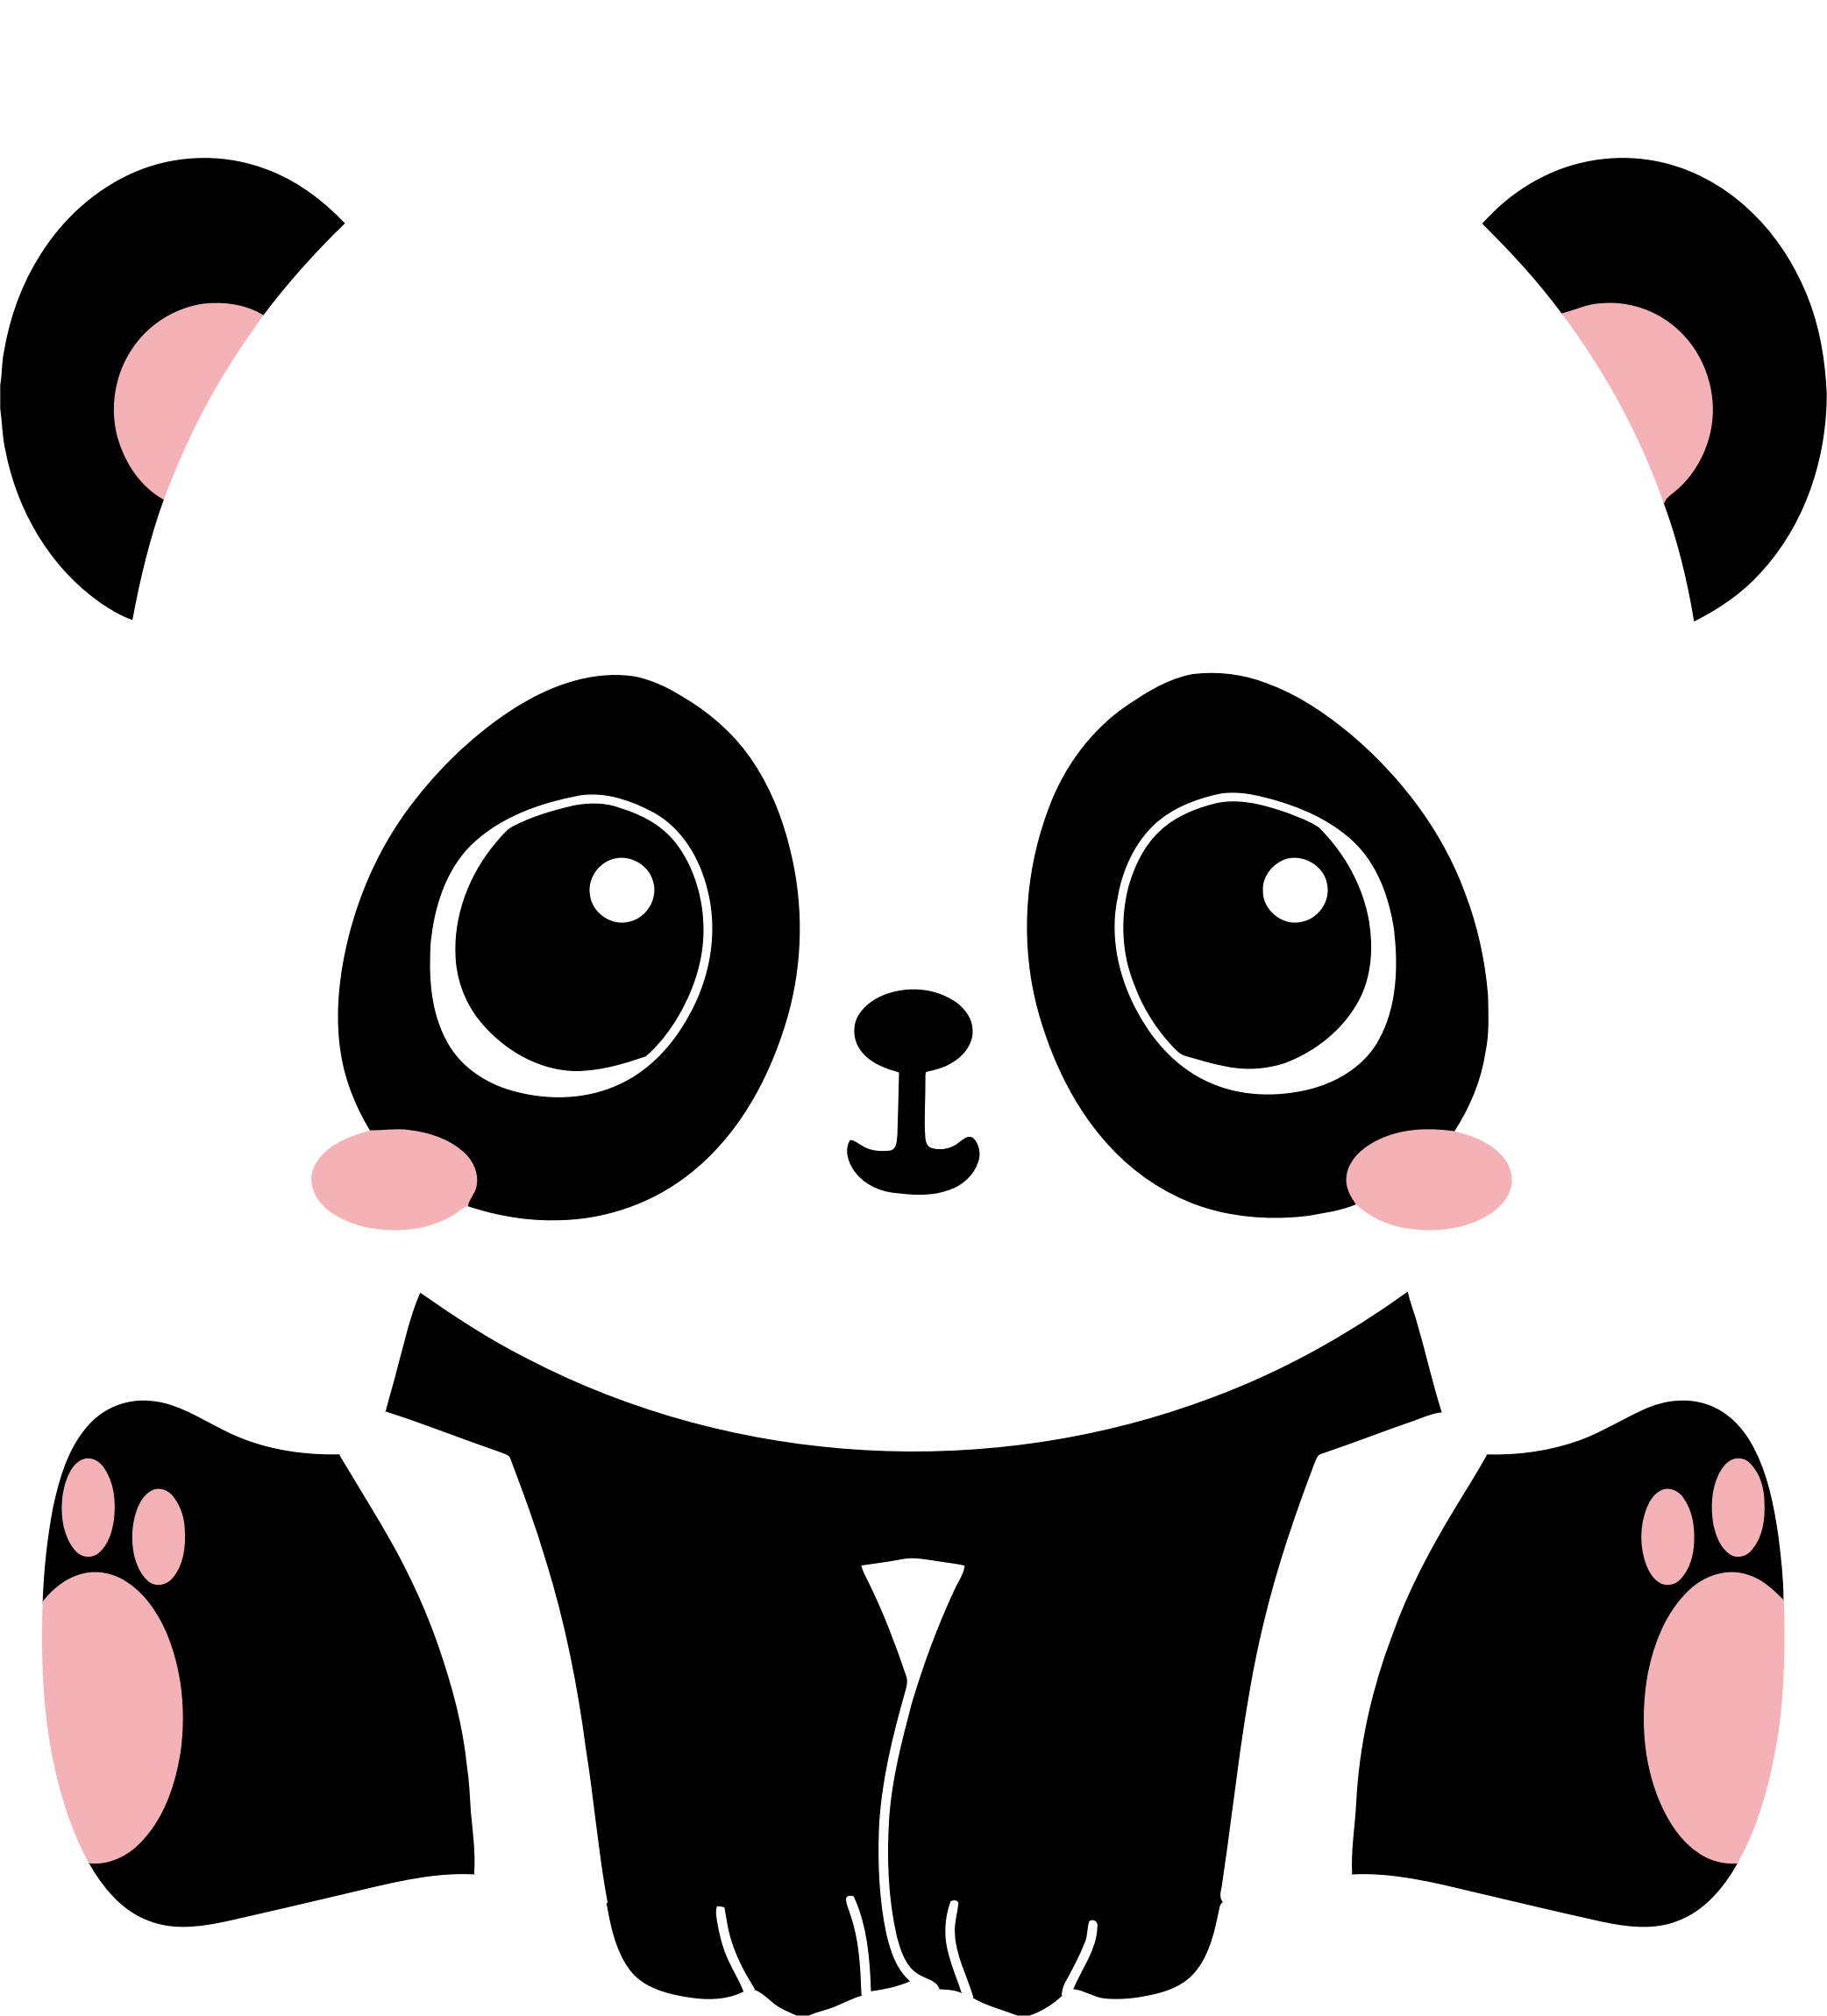 Adorable Panda by GDJ